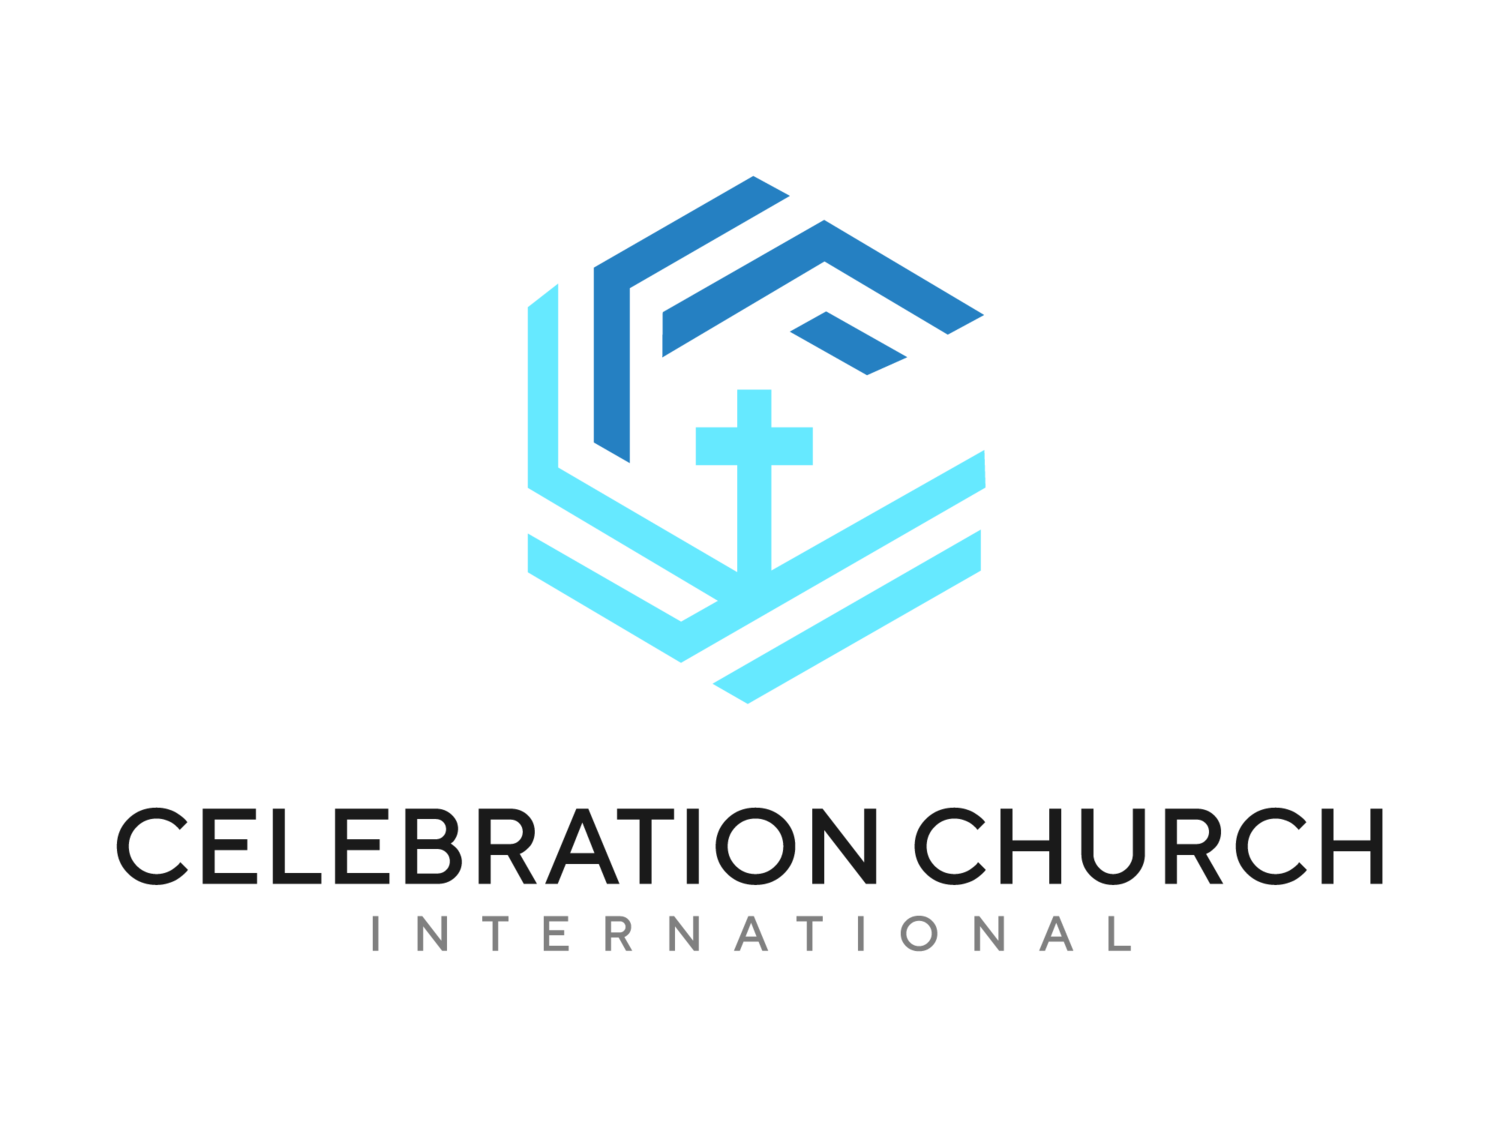 Celebration Church International